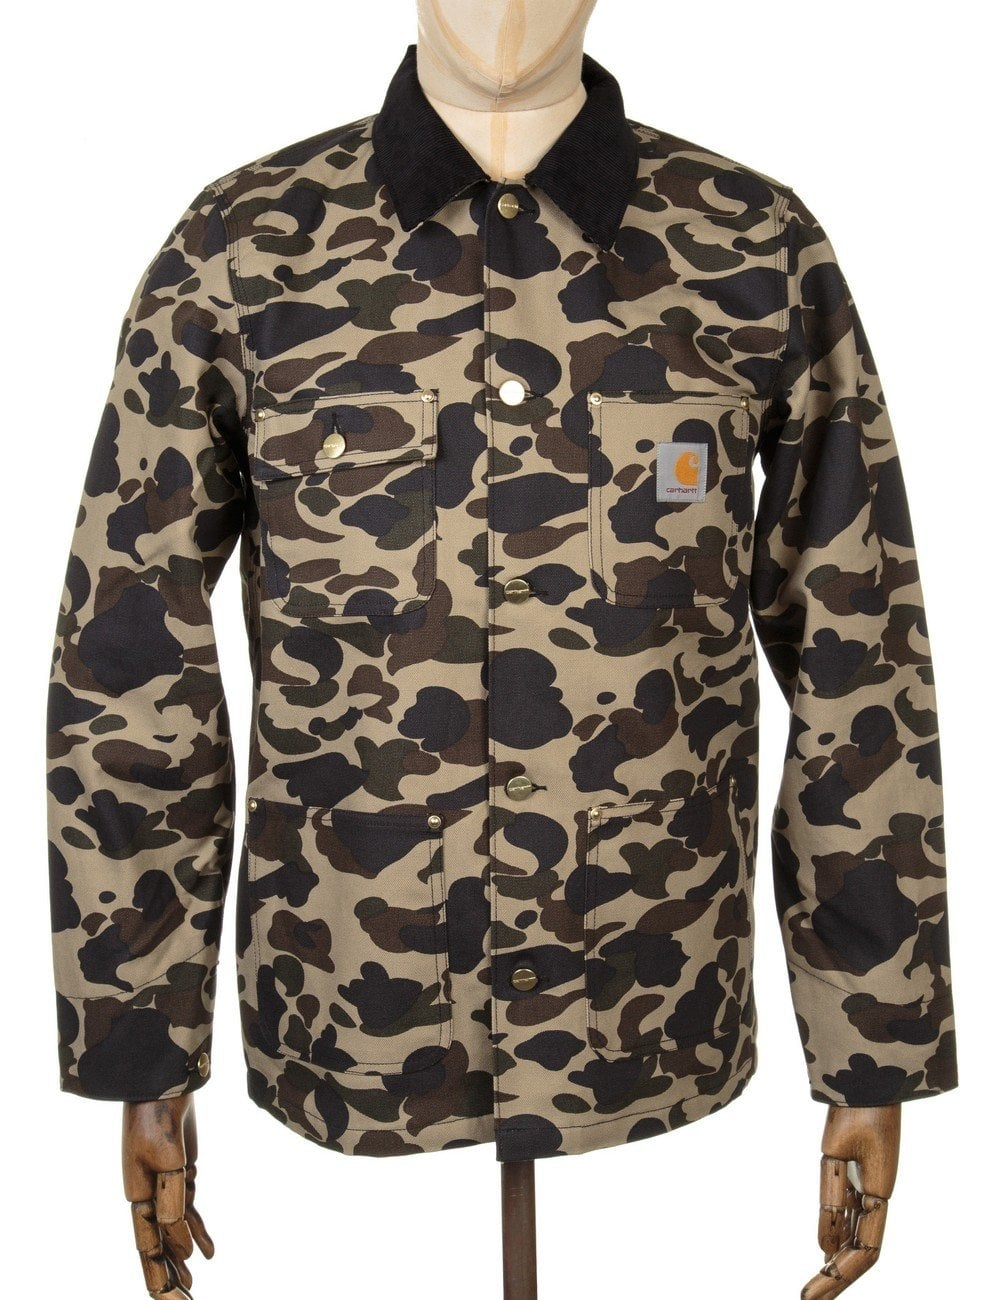 649cb2410ea03 Carhartt WIP Michigan Chore Coat - Camo Duck - Clothing from Fat ...